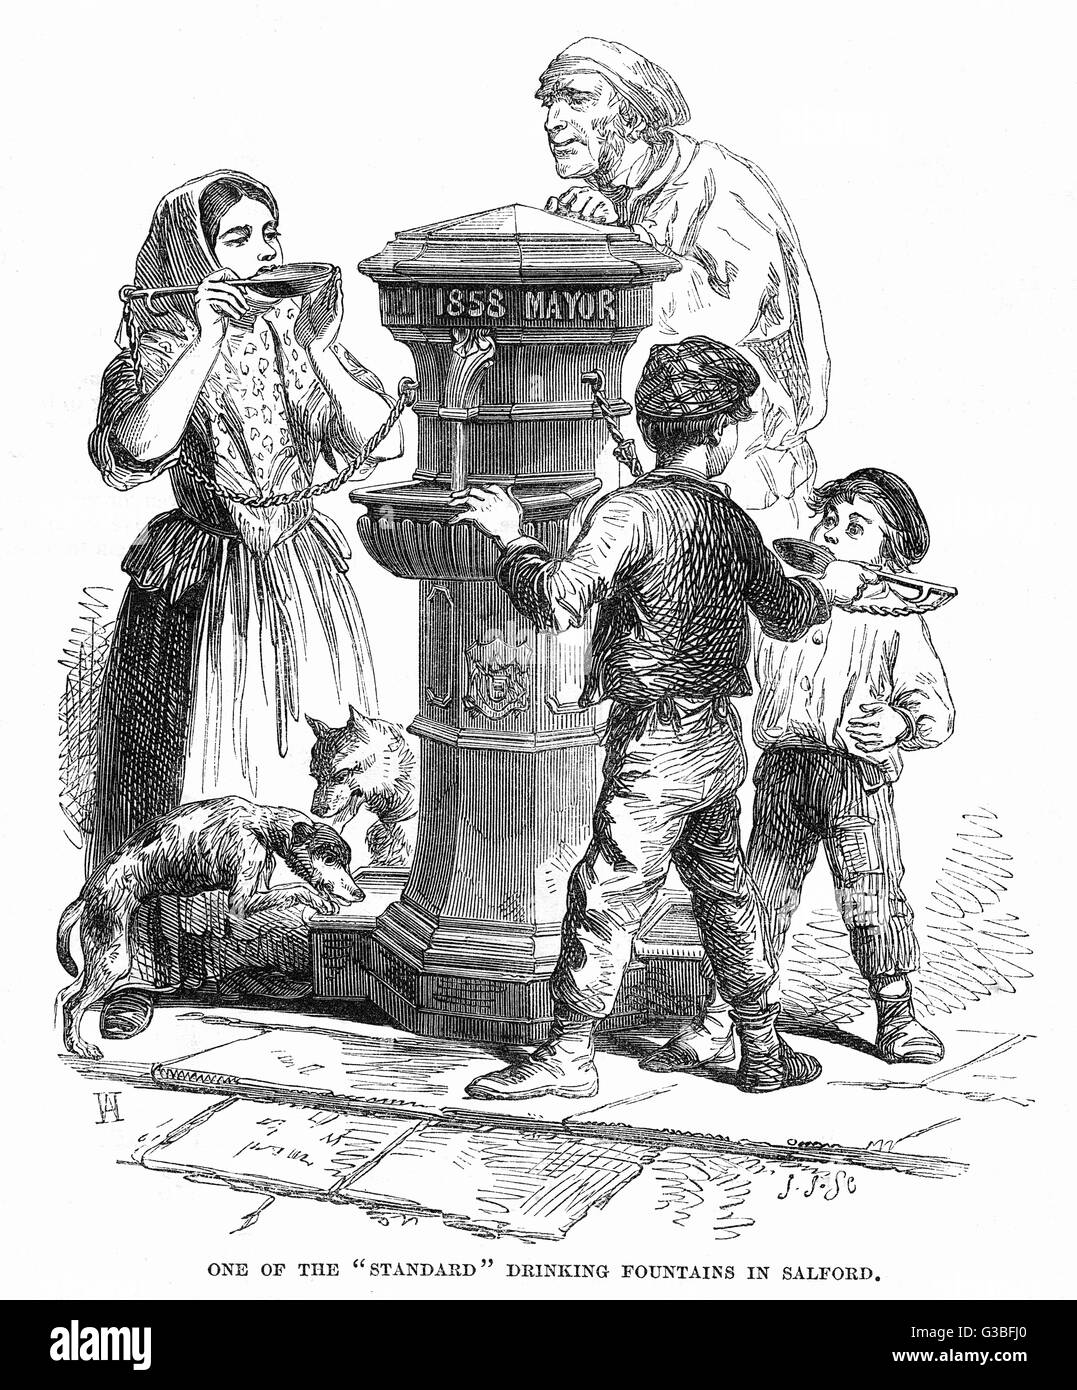 Men, children and even dogs slake their thirst at a  'Standard' drinking fountain  in Salford, Manchester. - Stock Image